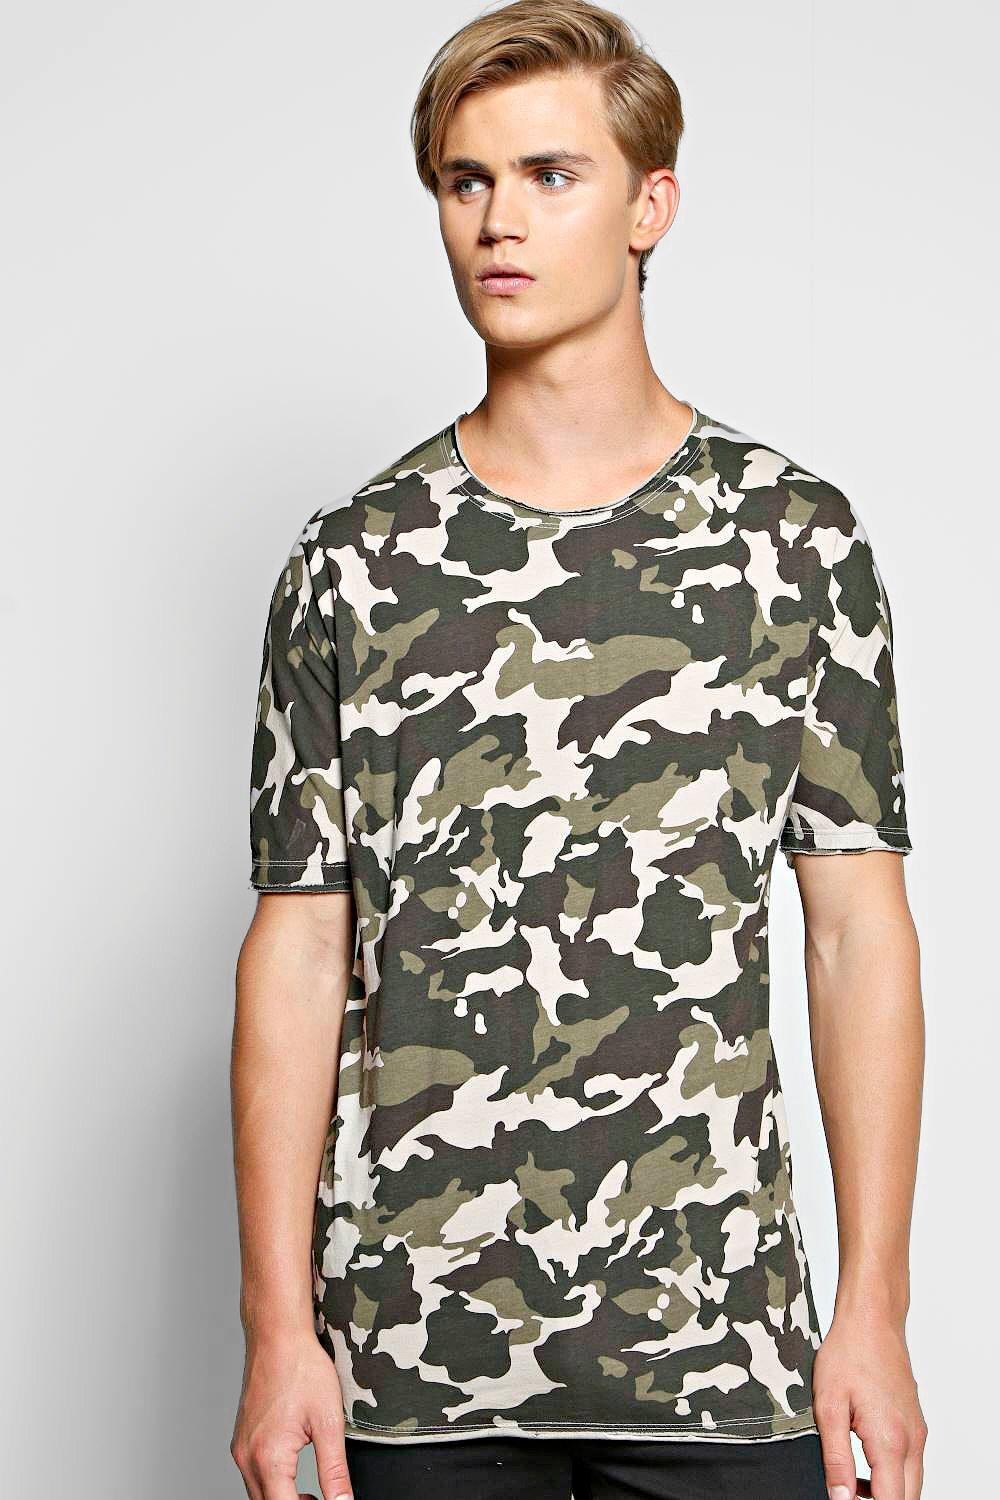 Oversized Longline Camo T Shirt With Raw Edge Boohoo Tendencies Sweater Black Logo Pullover Hitam Xl